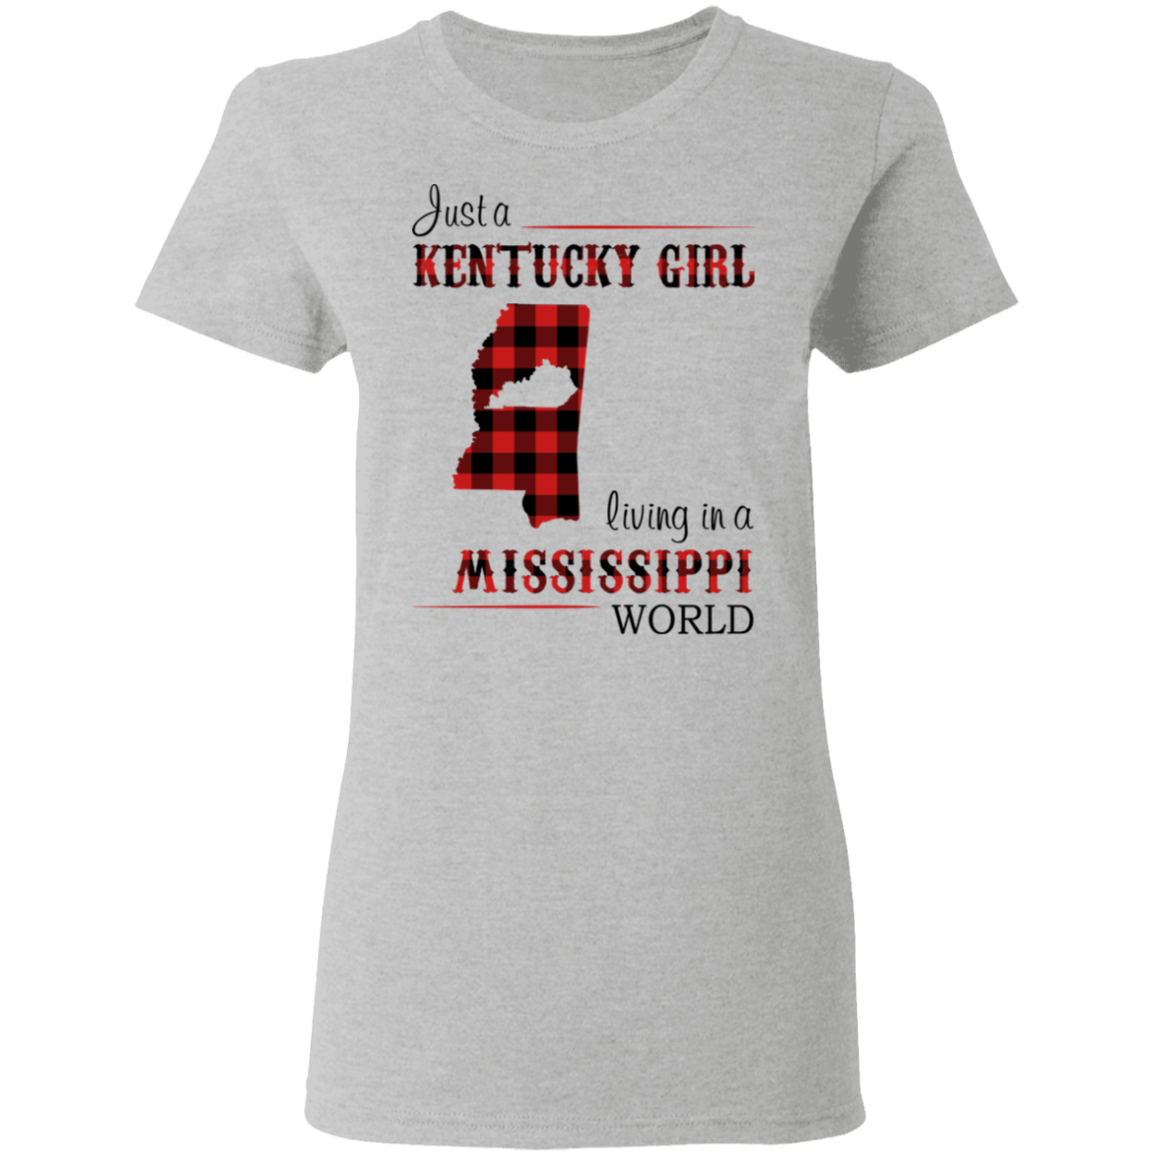 JUST A KENTUCKY GIRL LIVING IN A MISSISSIPPI WORLD